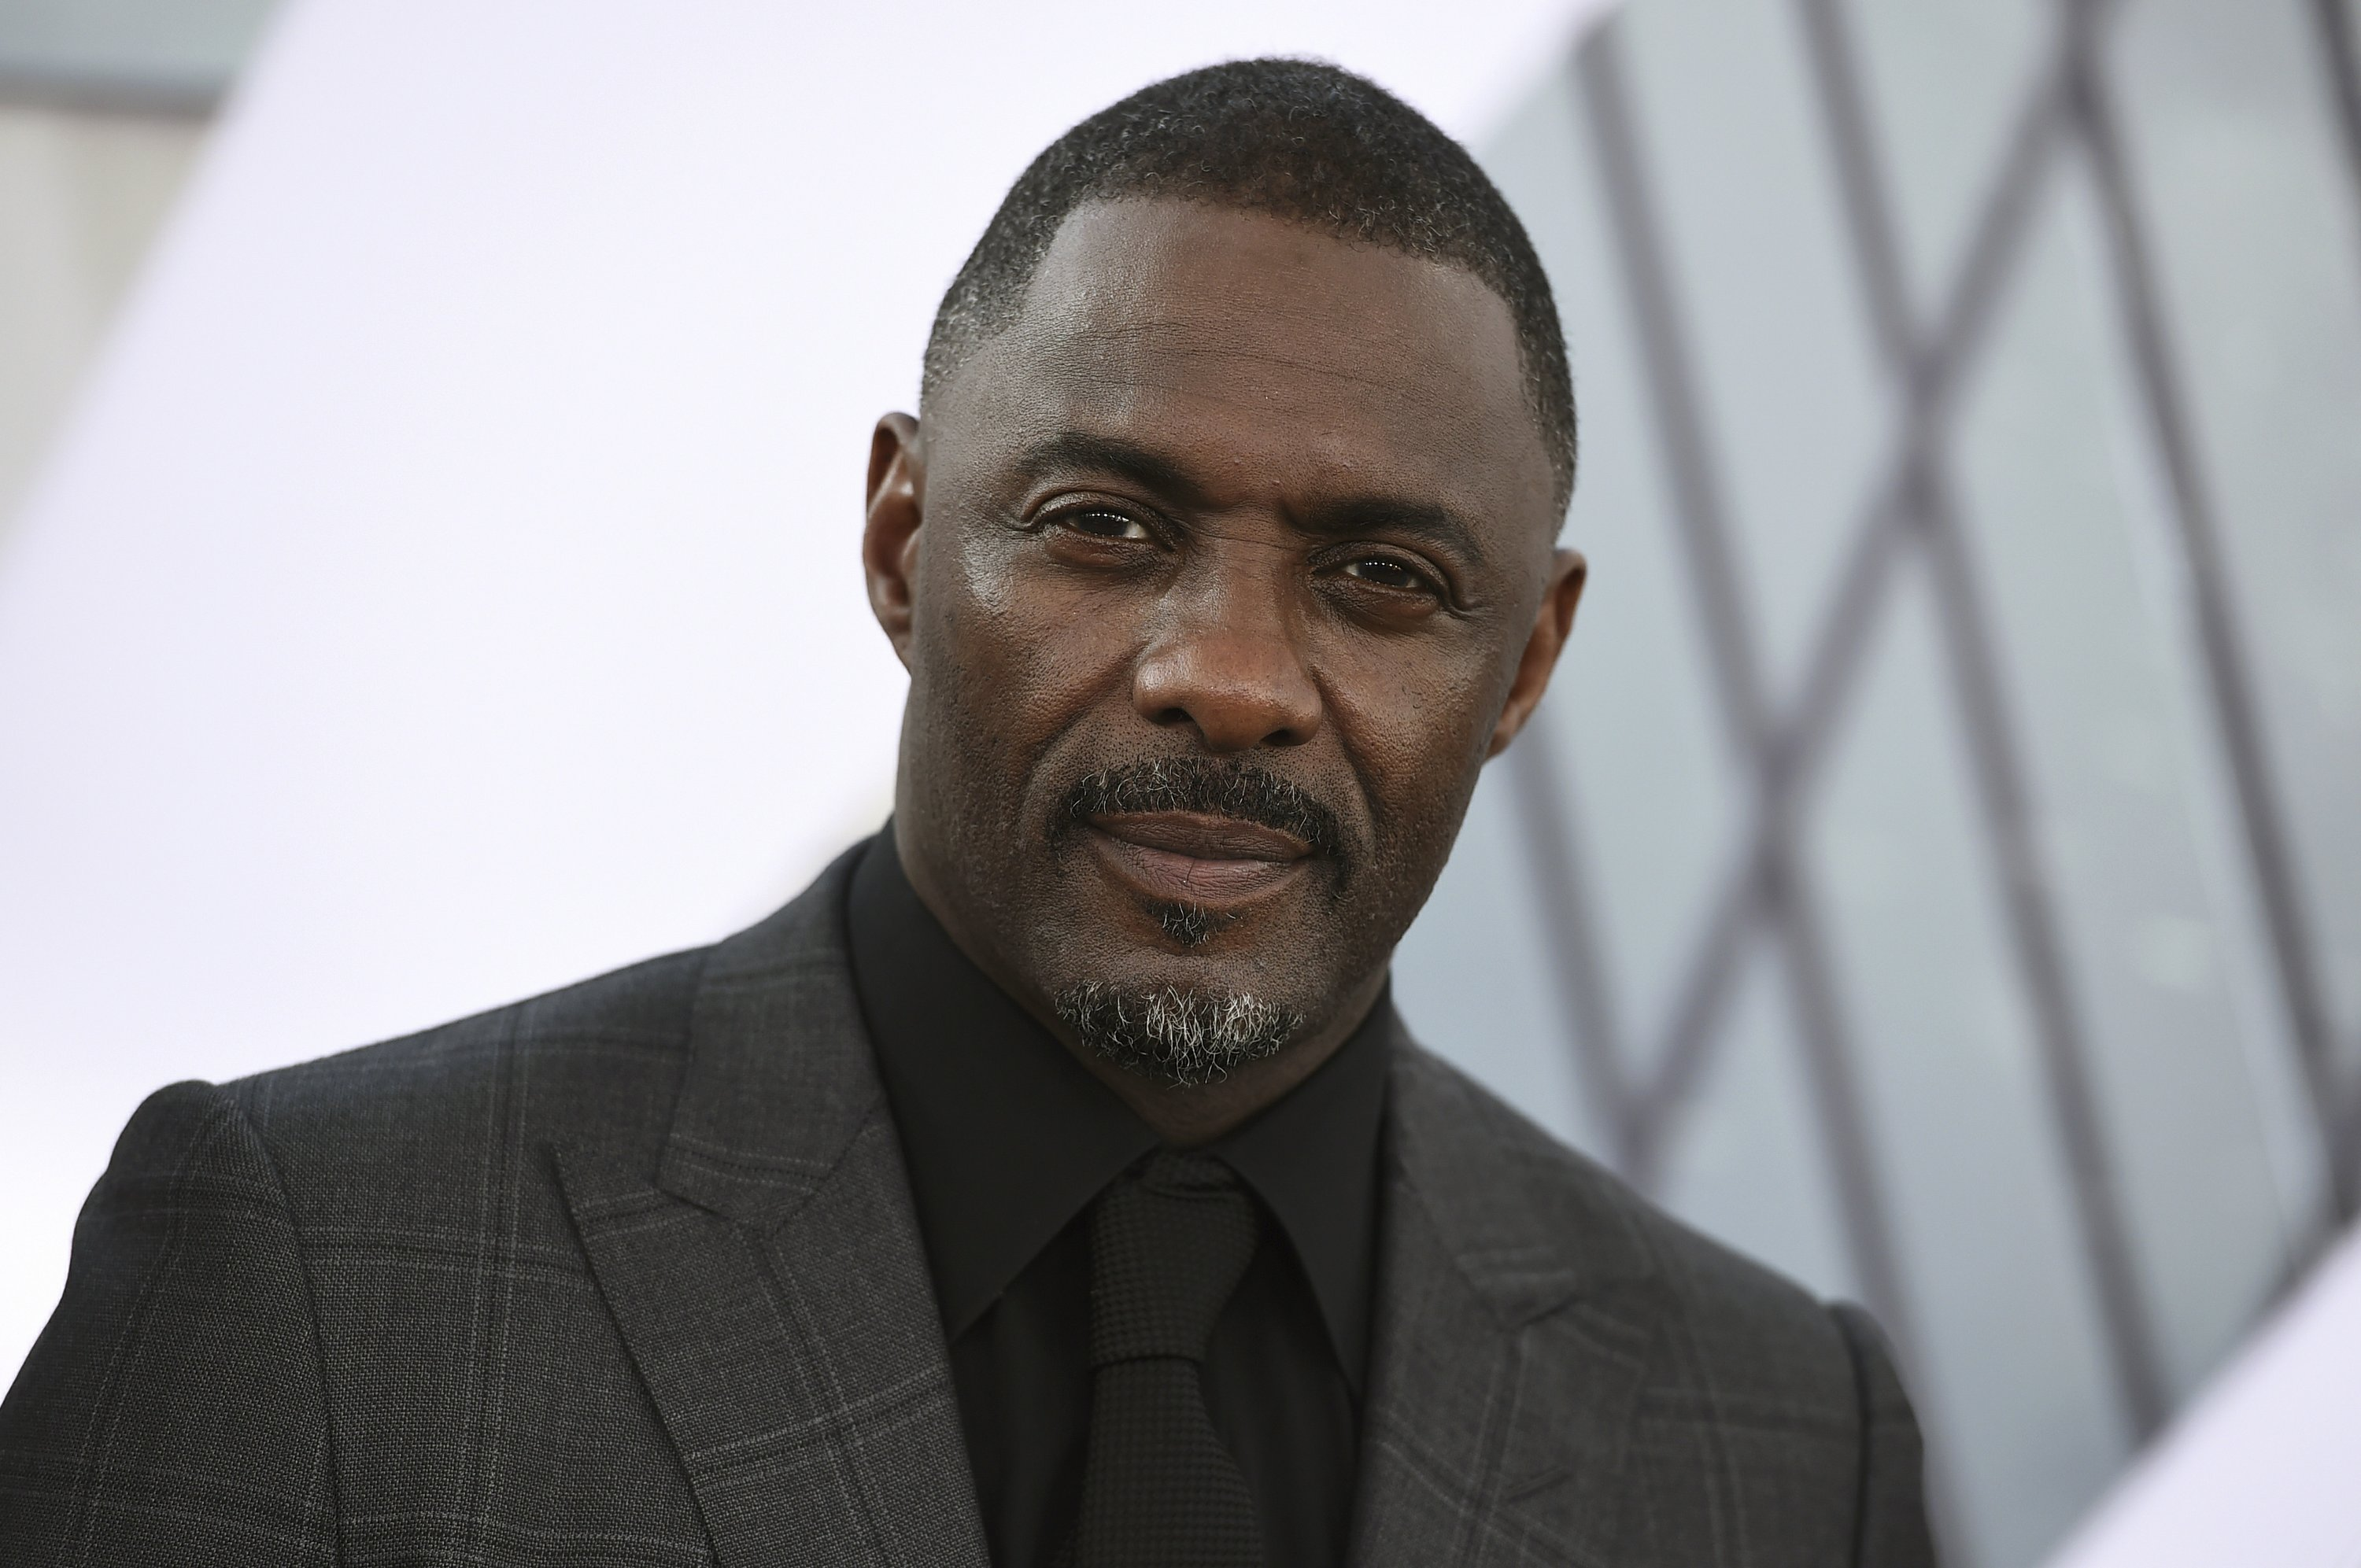 Idris Elba says he has coronavirus: 'no symptoms so far'